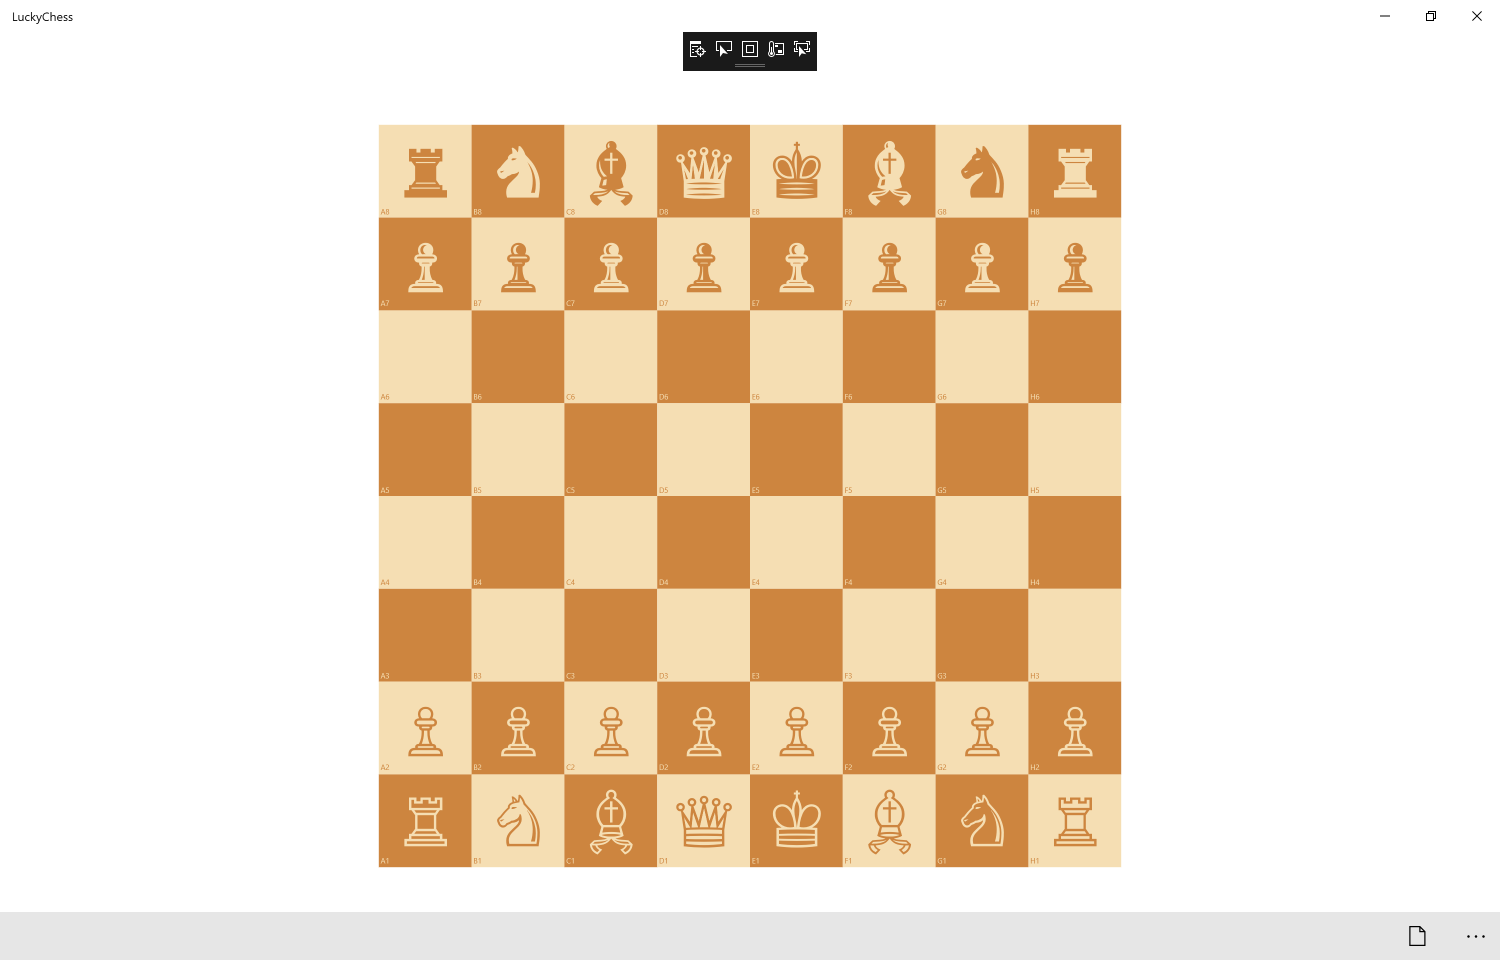 uwp-ran-lucky-chess